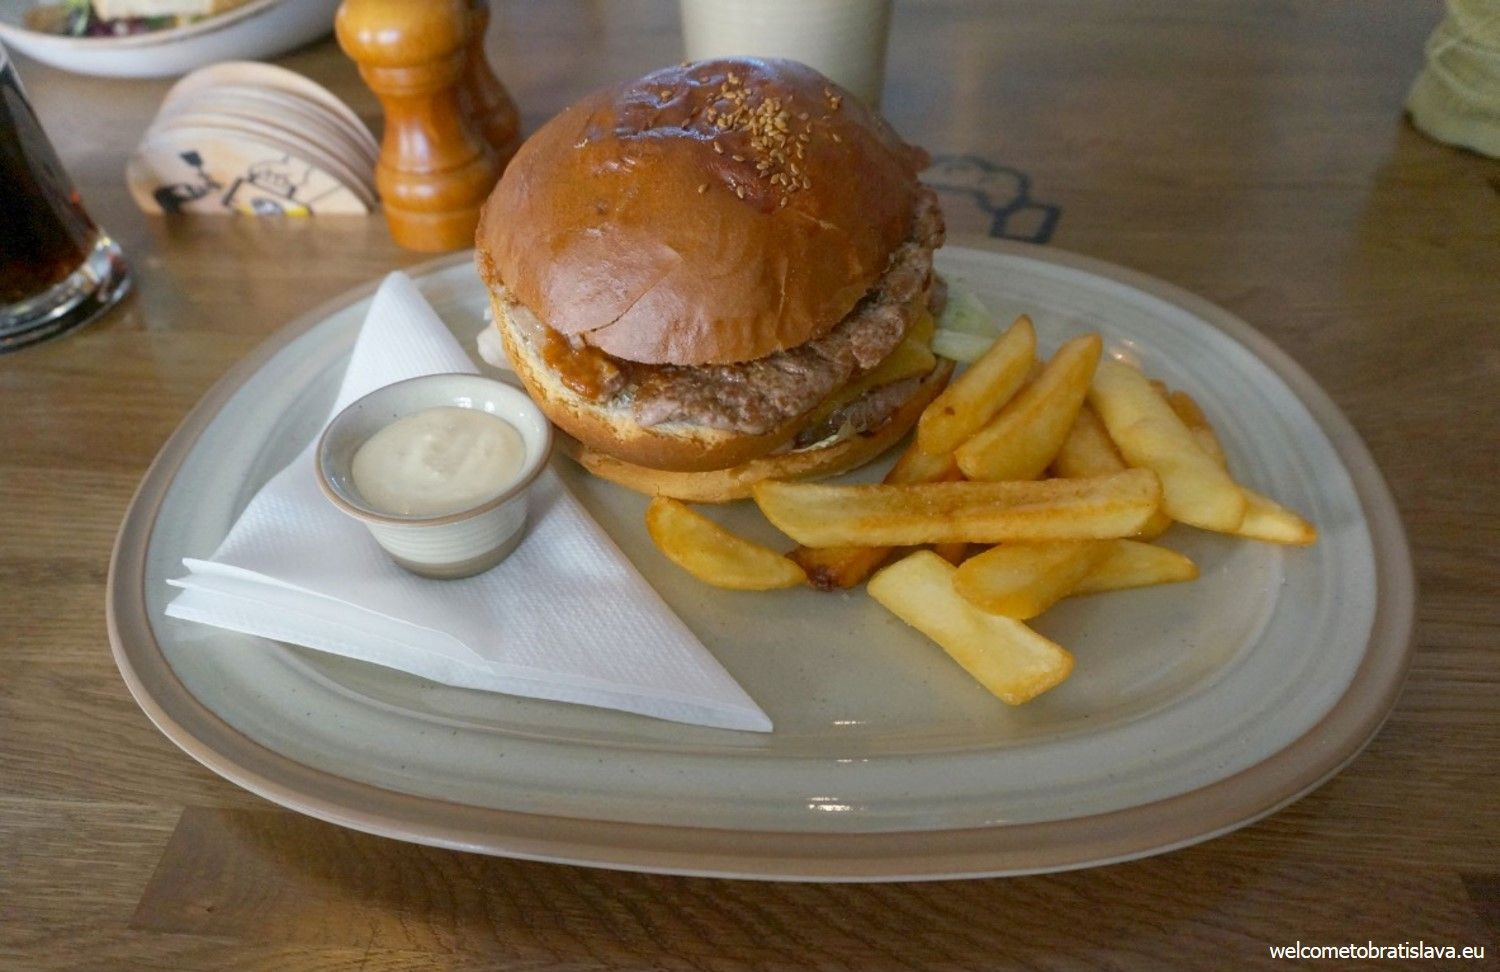 Burger with fried potatoes